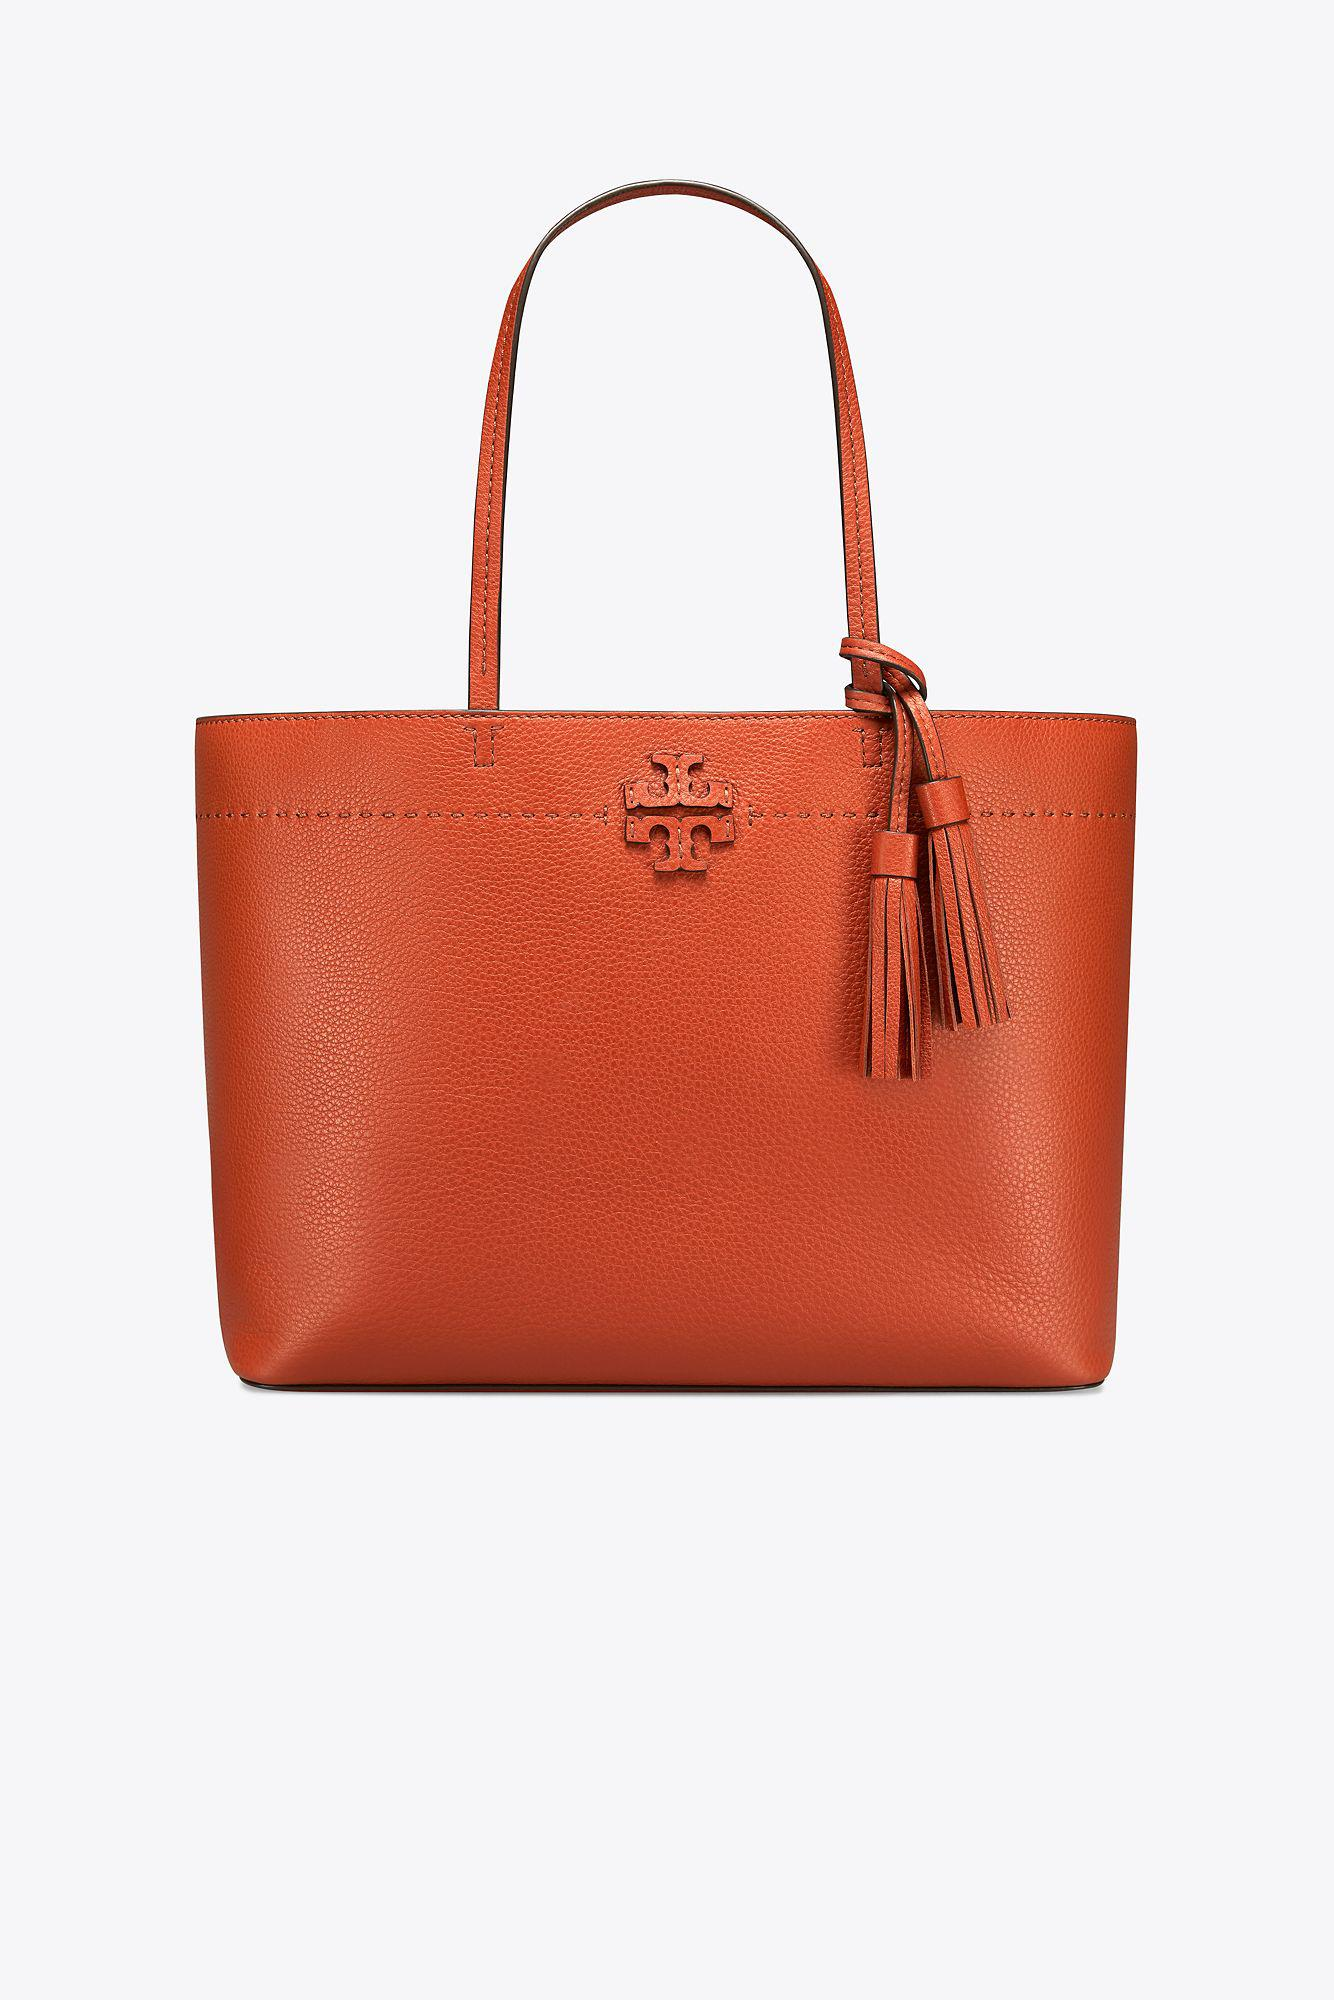 aaa5c32cd11e Tory Burch Mcgraw Tote in Red - Lyst